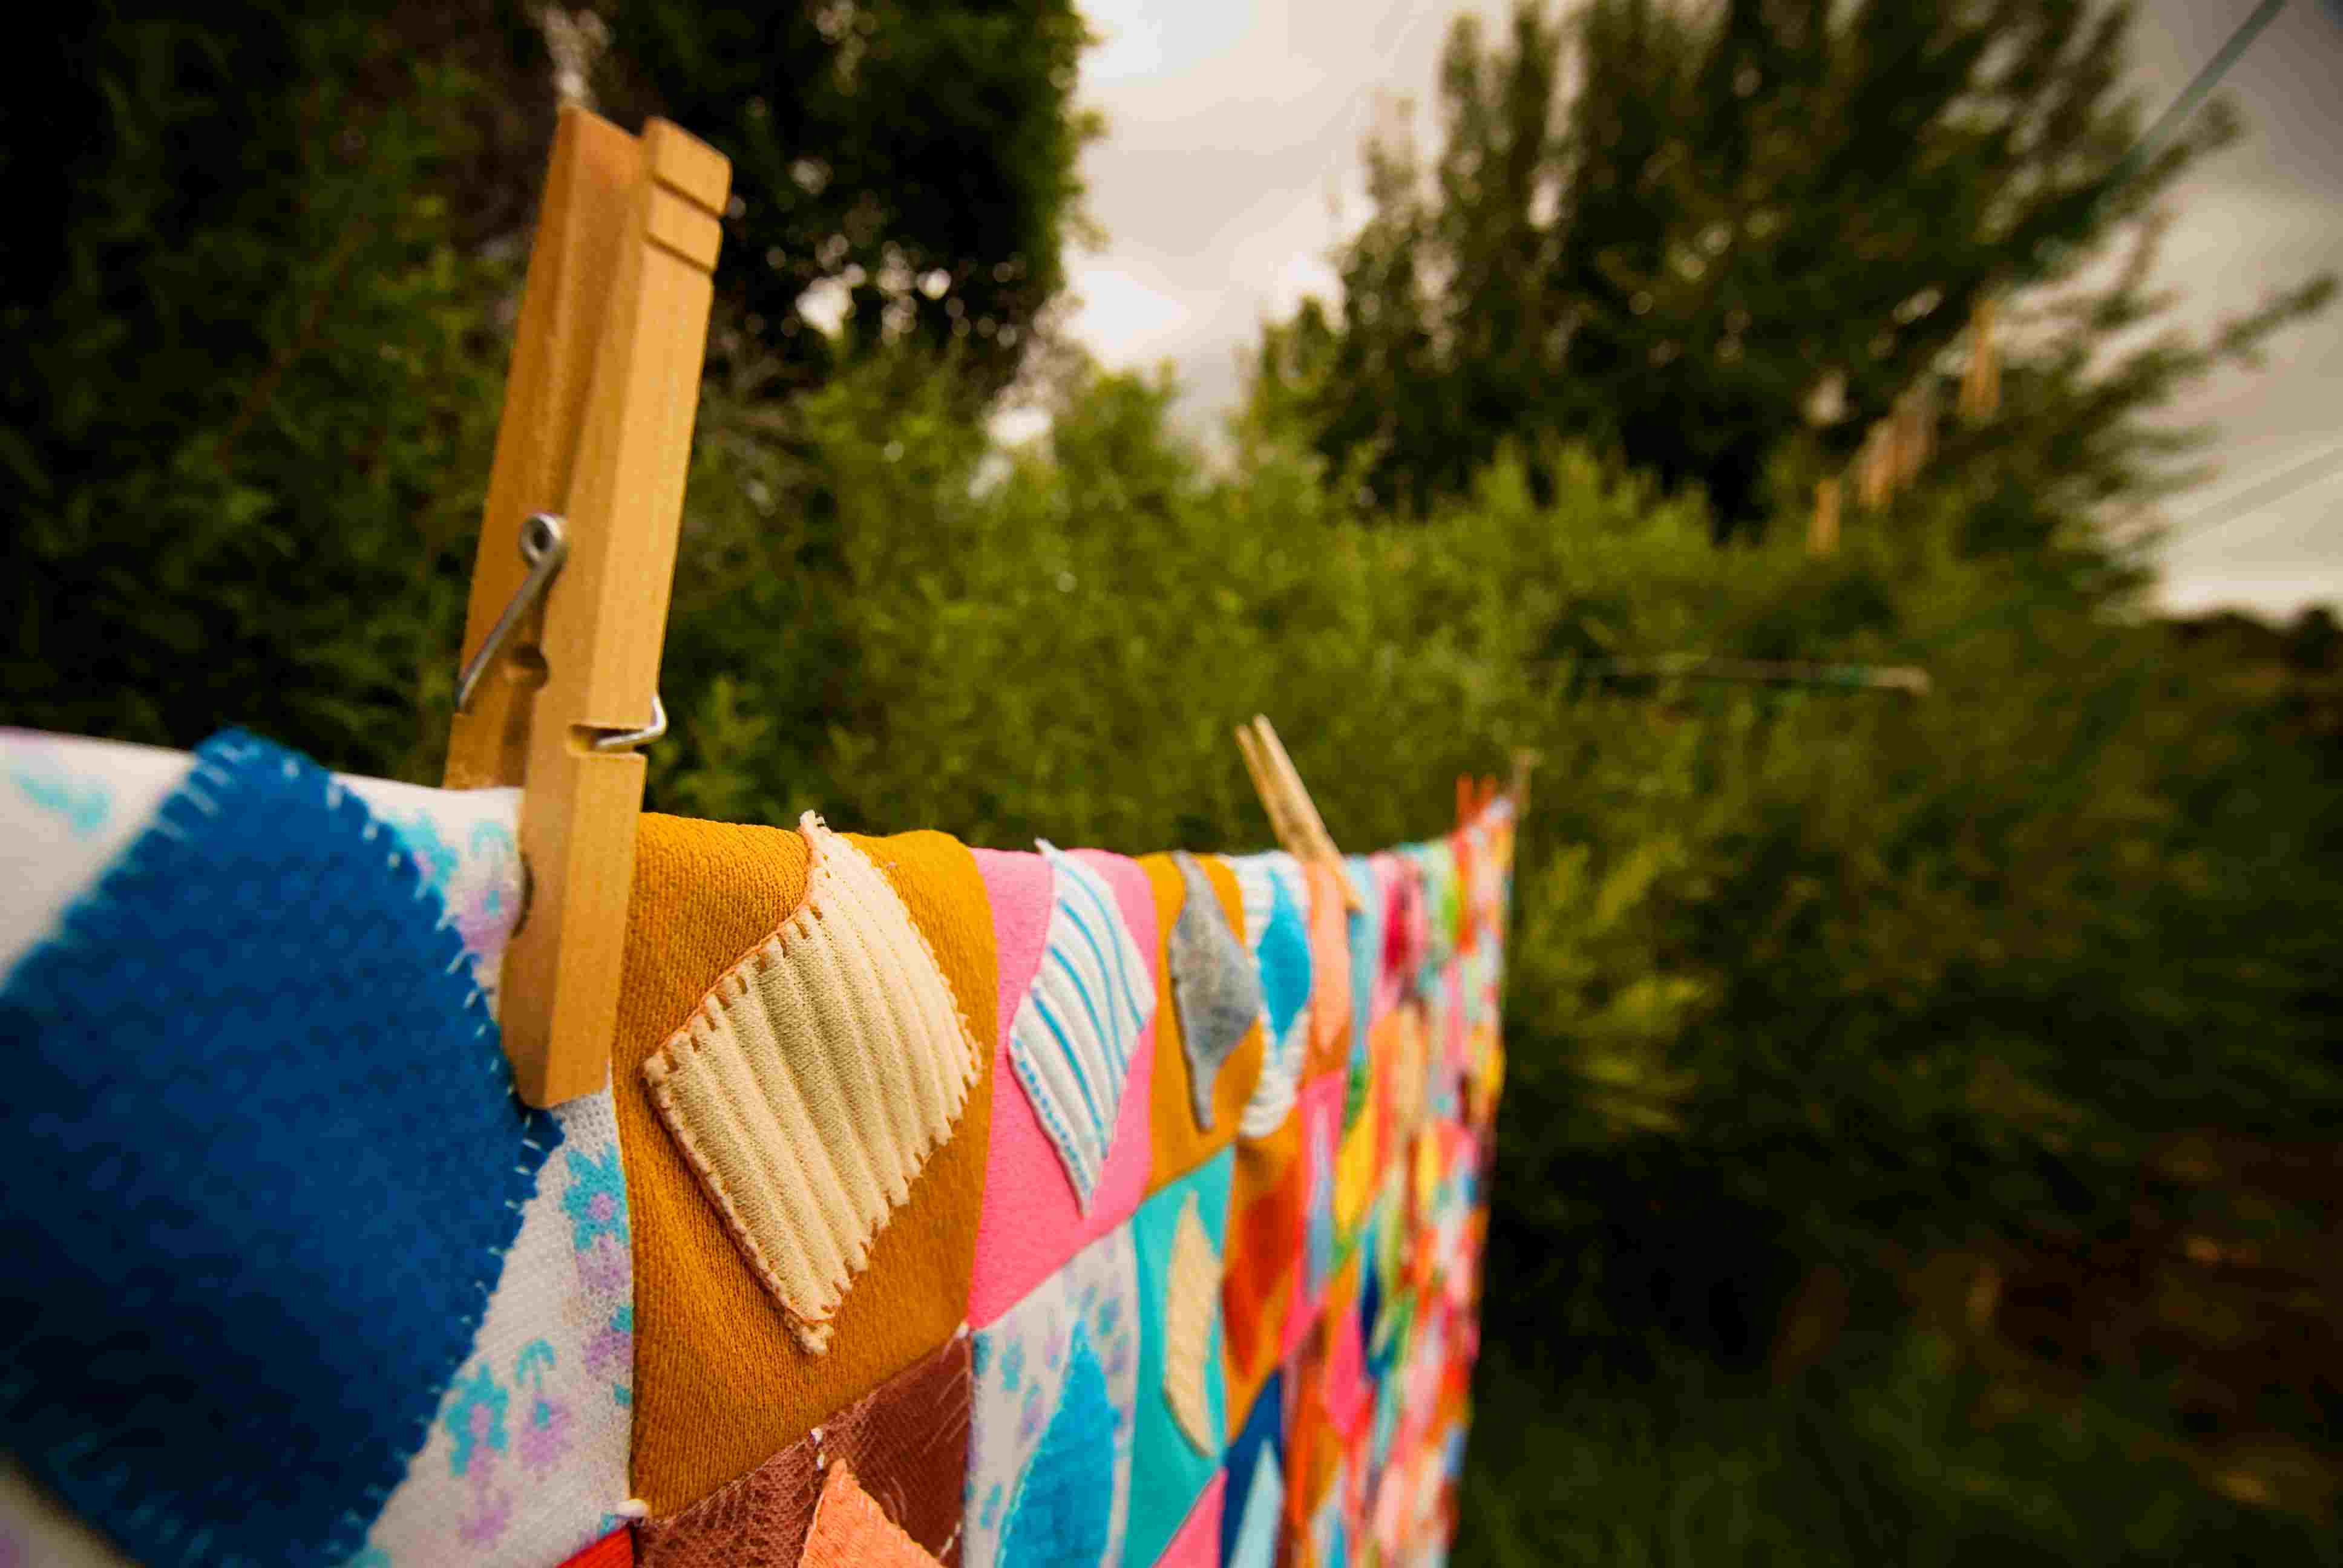 A colorful quilt on a clothesline